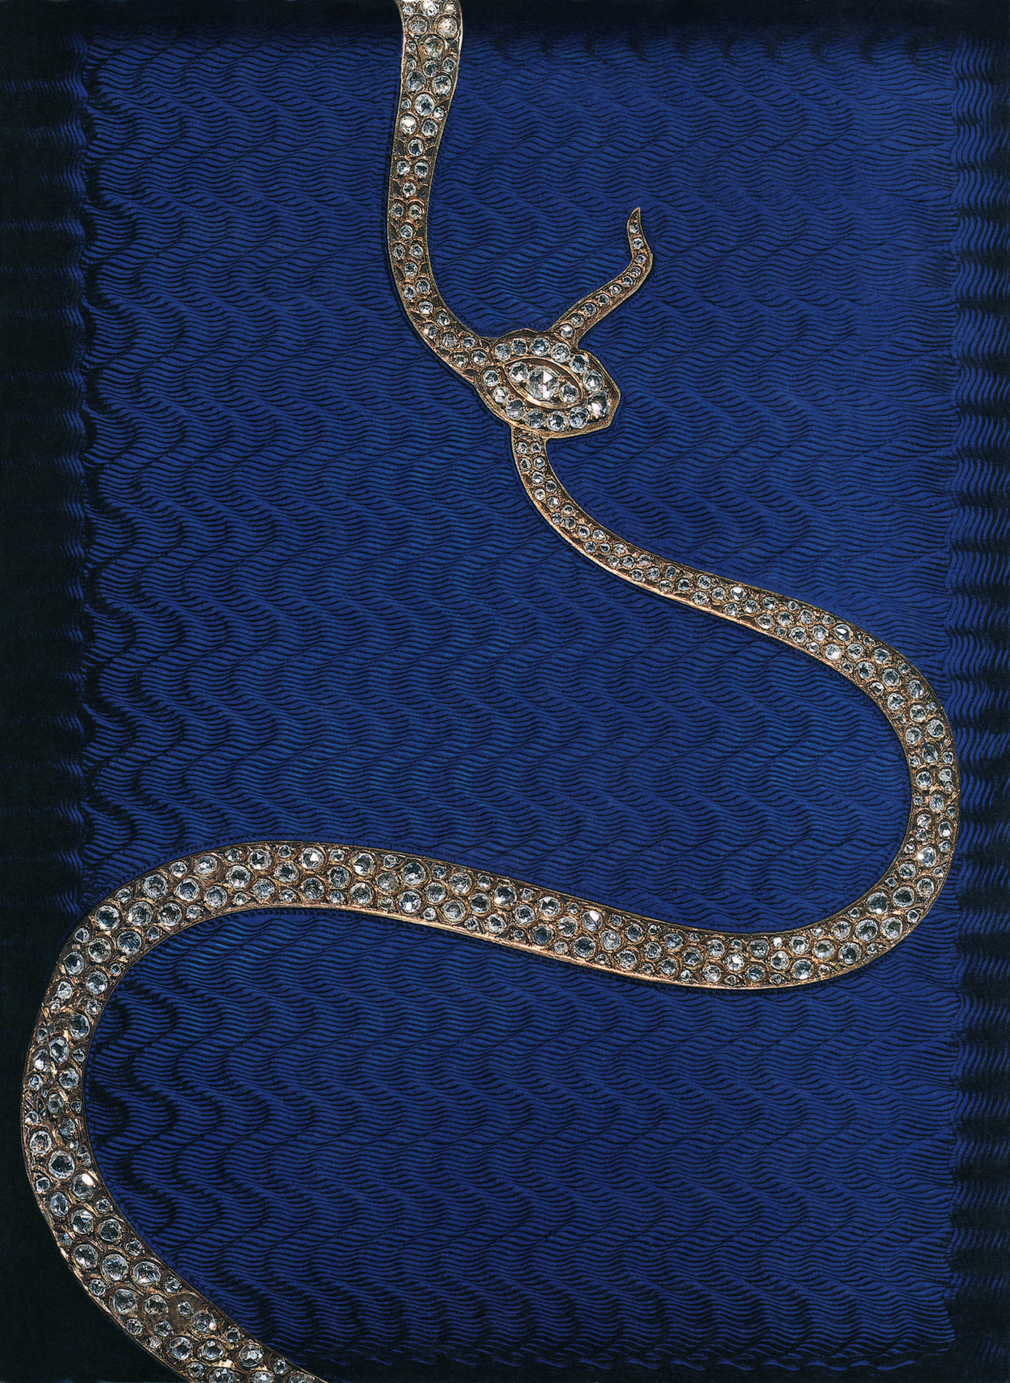 Cover for Faberge in the Royal Collection